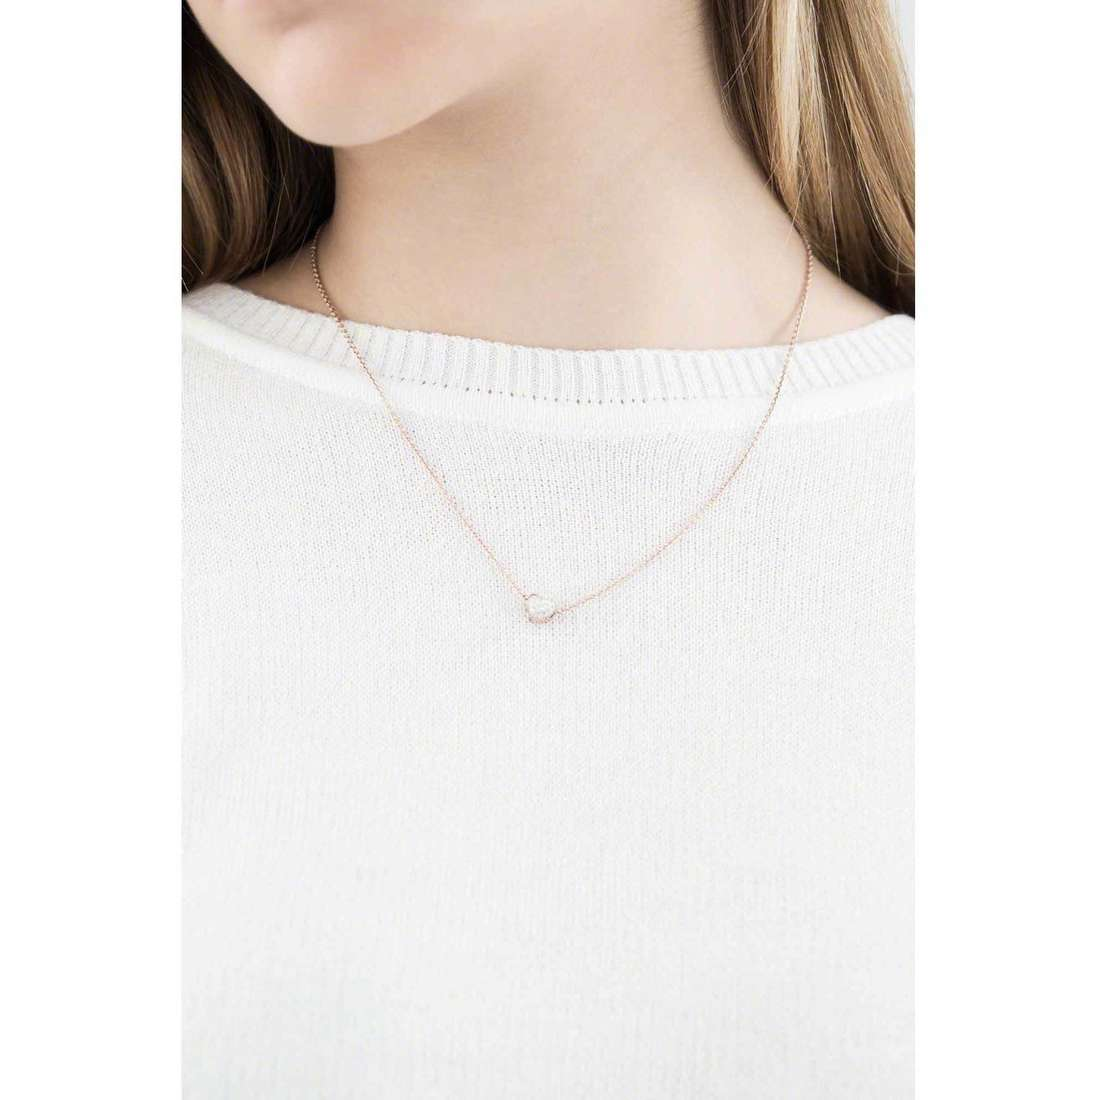 Marlù necklaces My World woman 18CN014R indosso